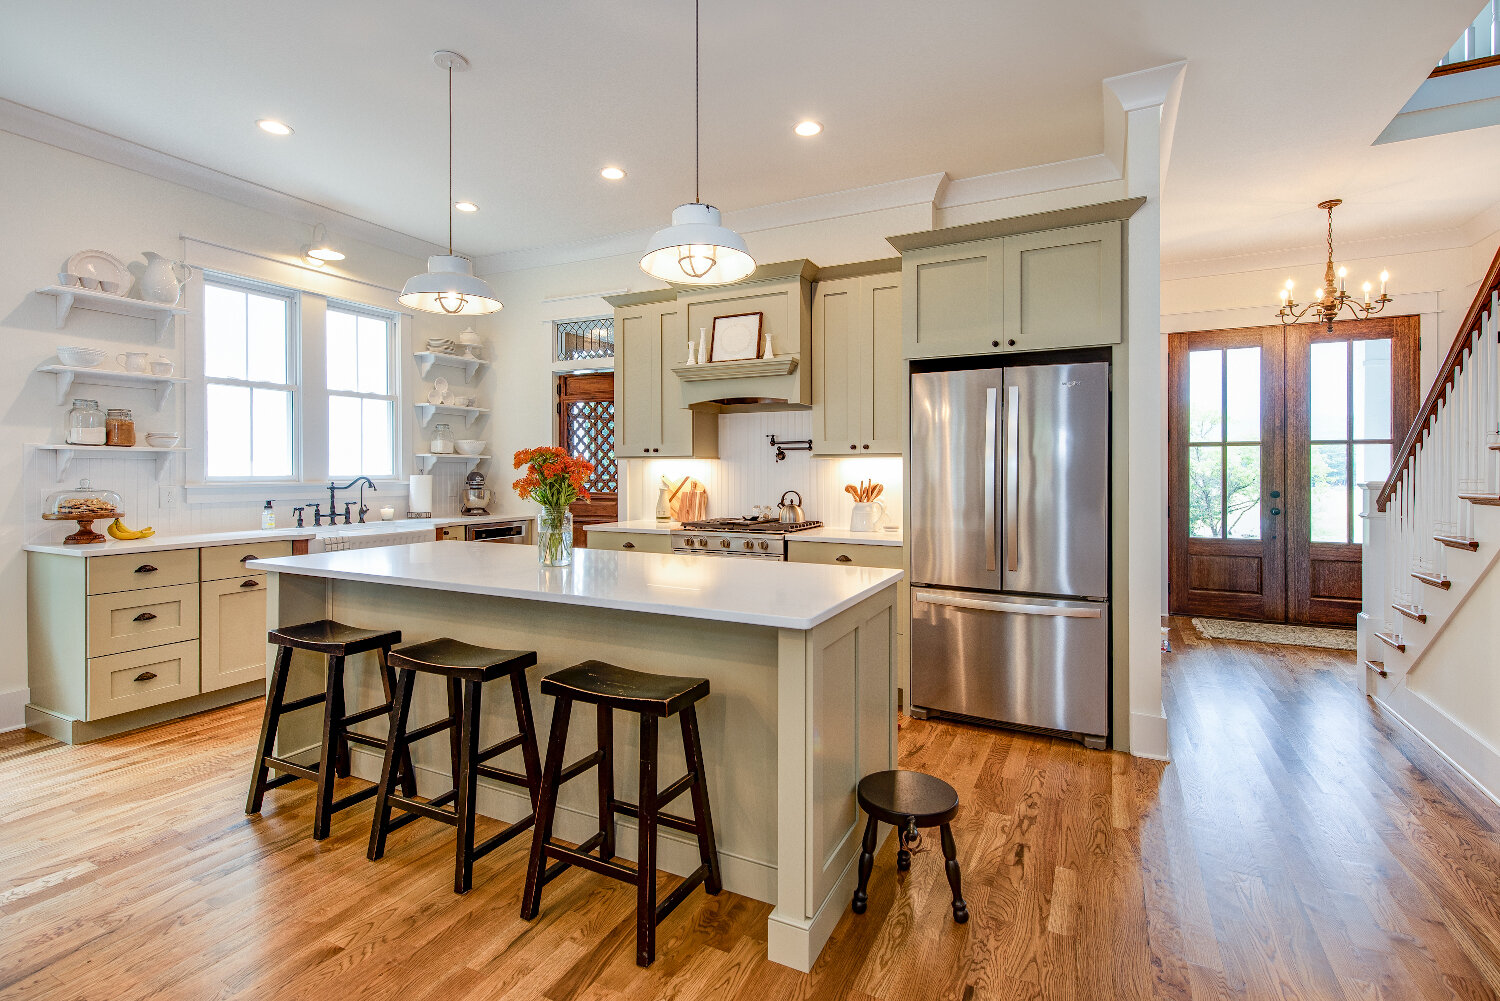 Services Sticks 2 Stones Design Custom Cabinetry In Knoxville Tennessee Custom Kitchen Cabinets Knoxville Cabinet Companies In Knoxville Tn Cabinet Installation Knoxville Tn Kitchen Countertops Knoxville